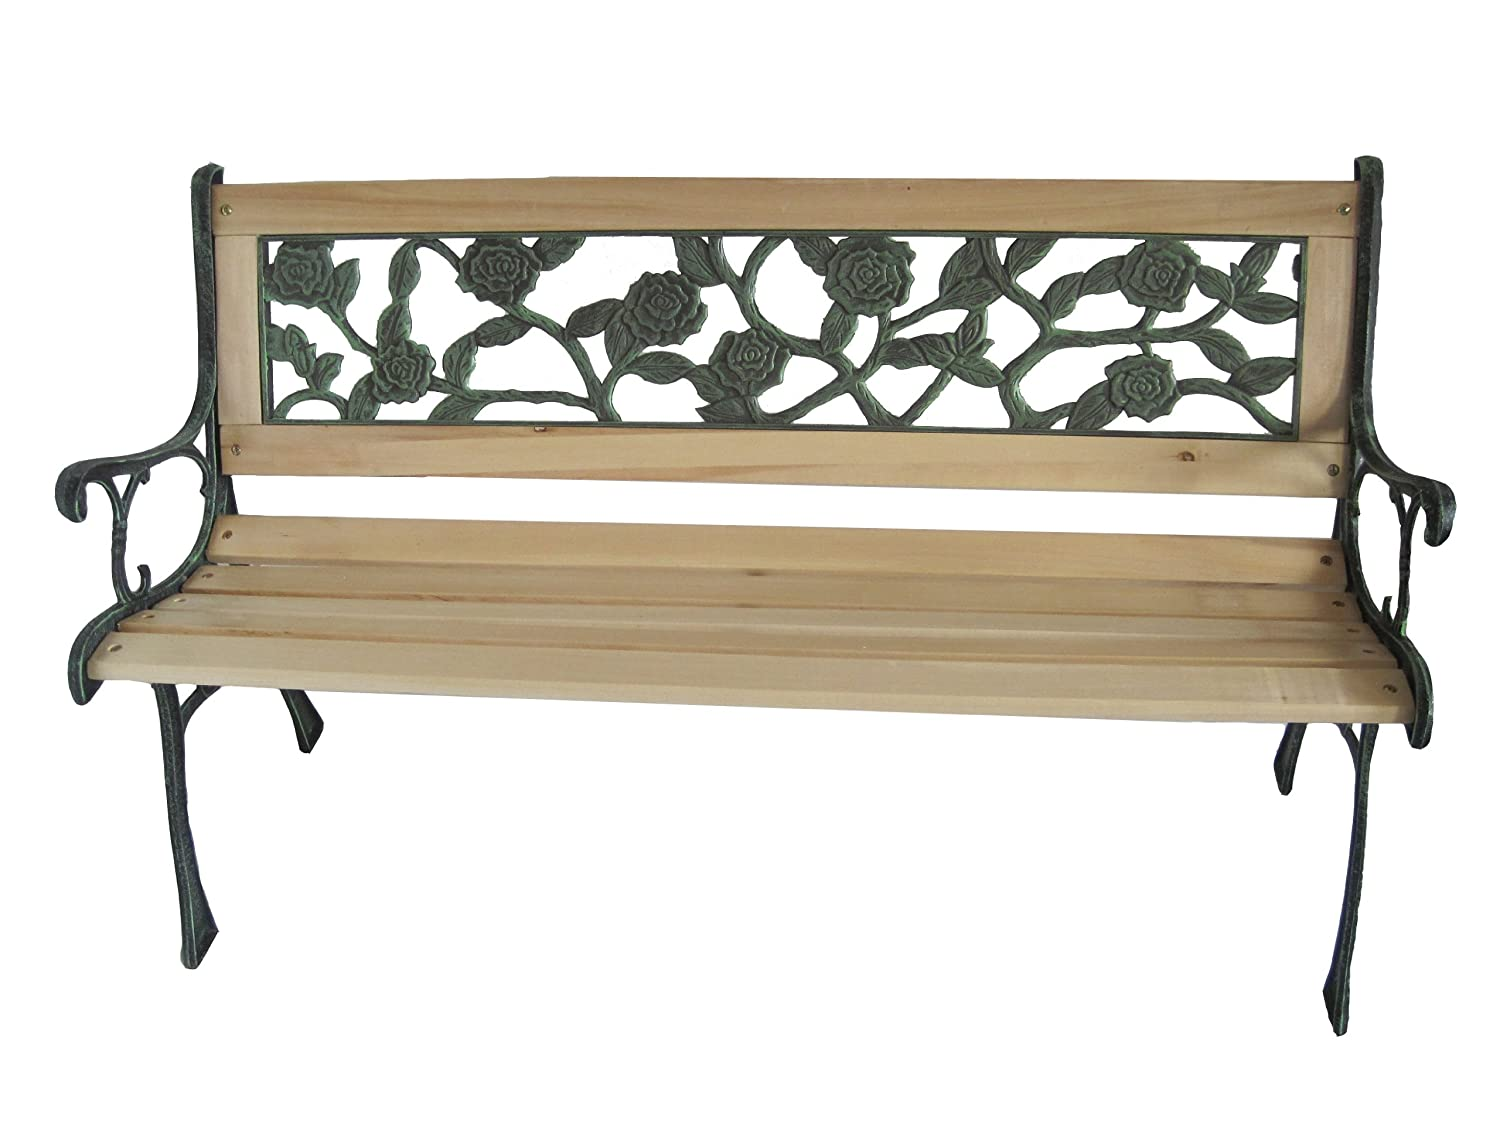 ryman bench outdoor living garden storage furniture